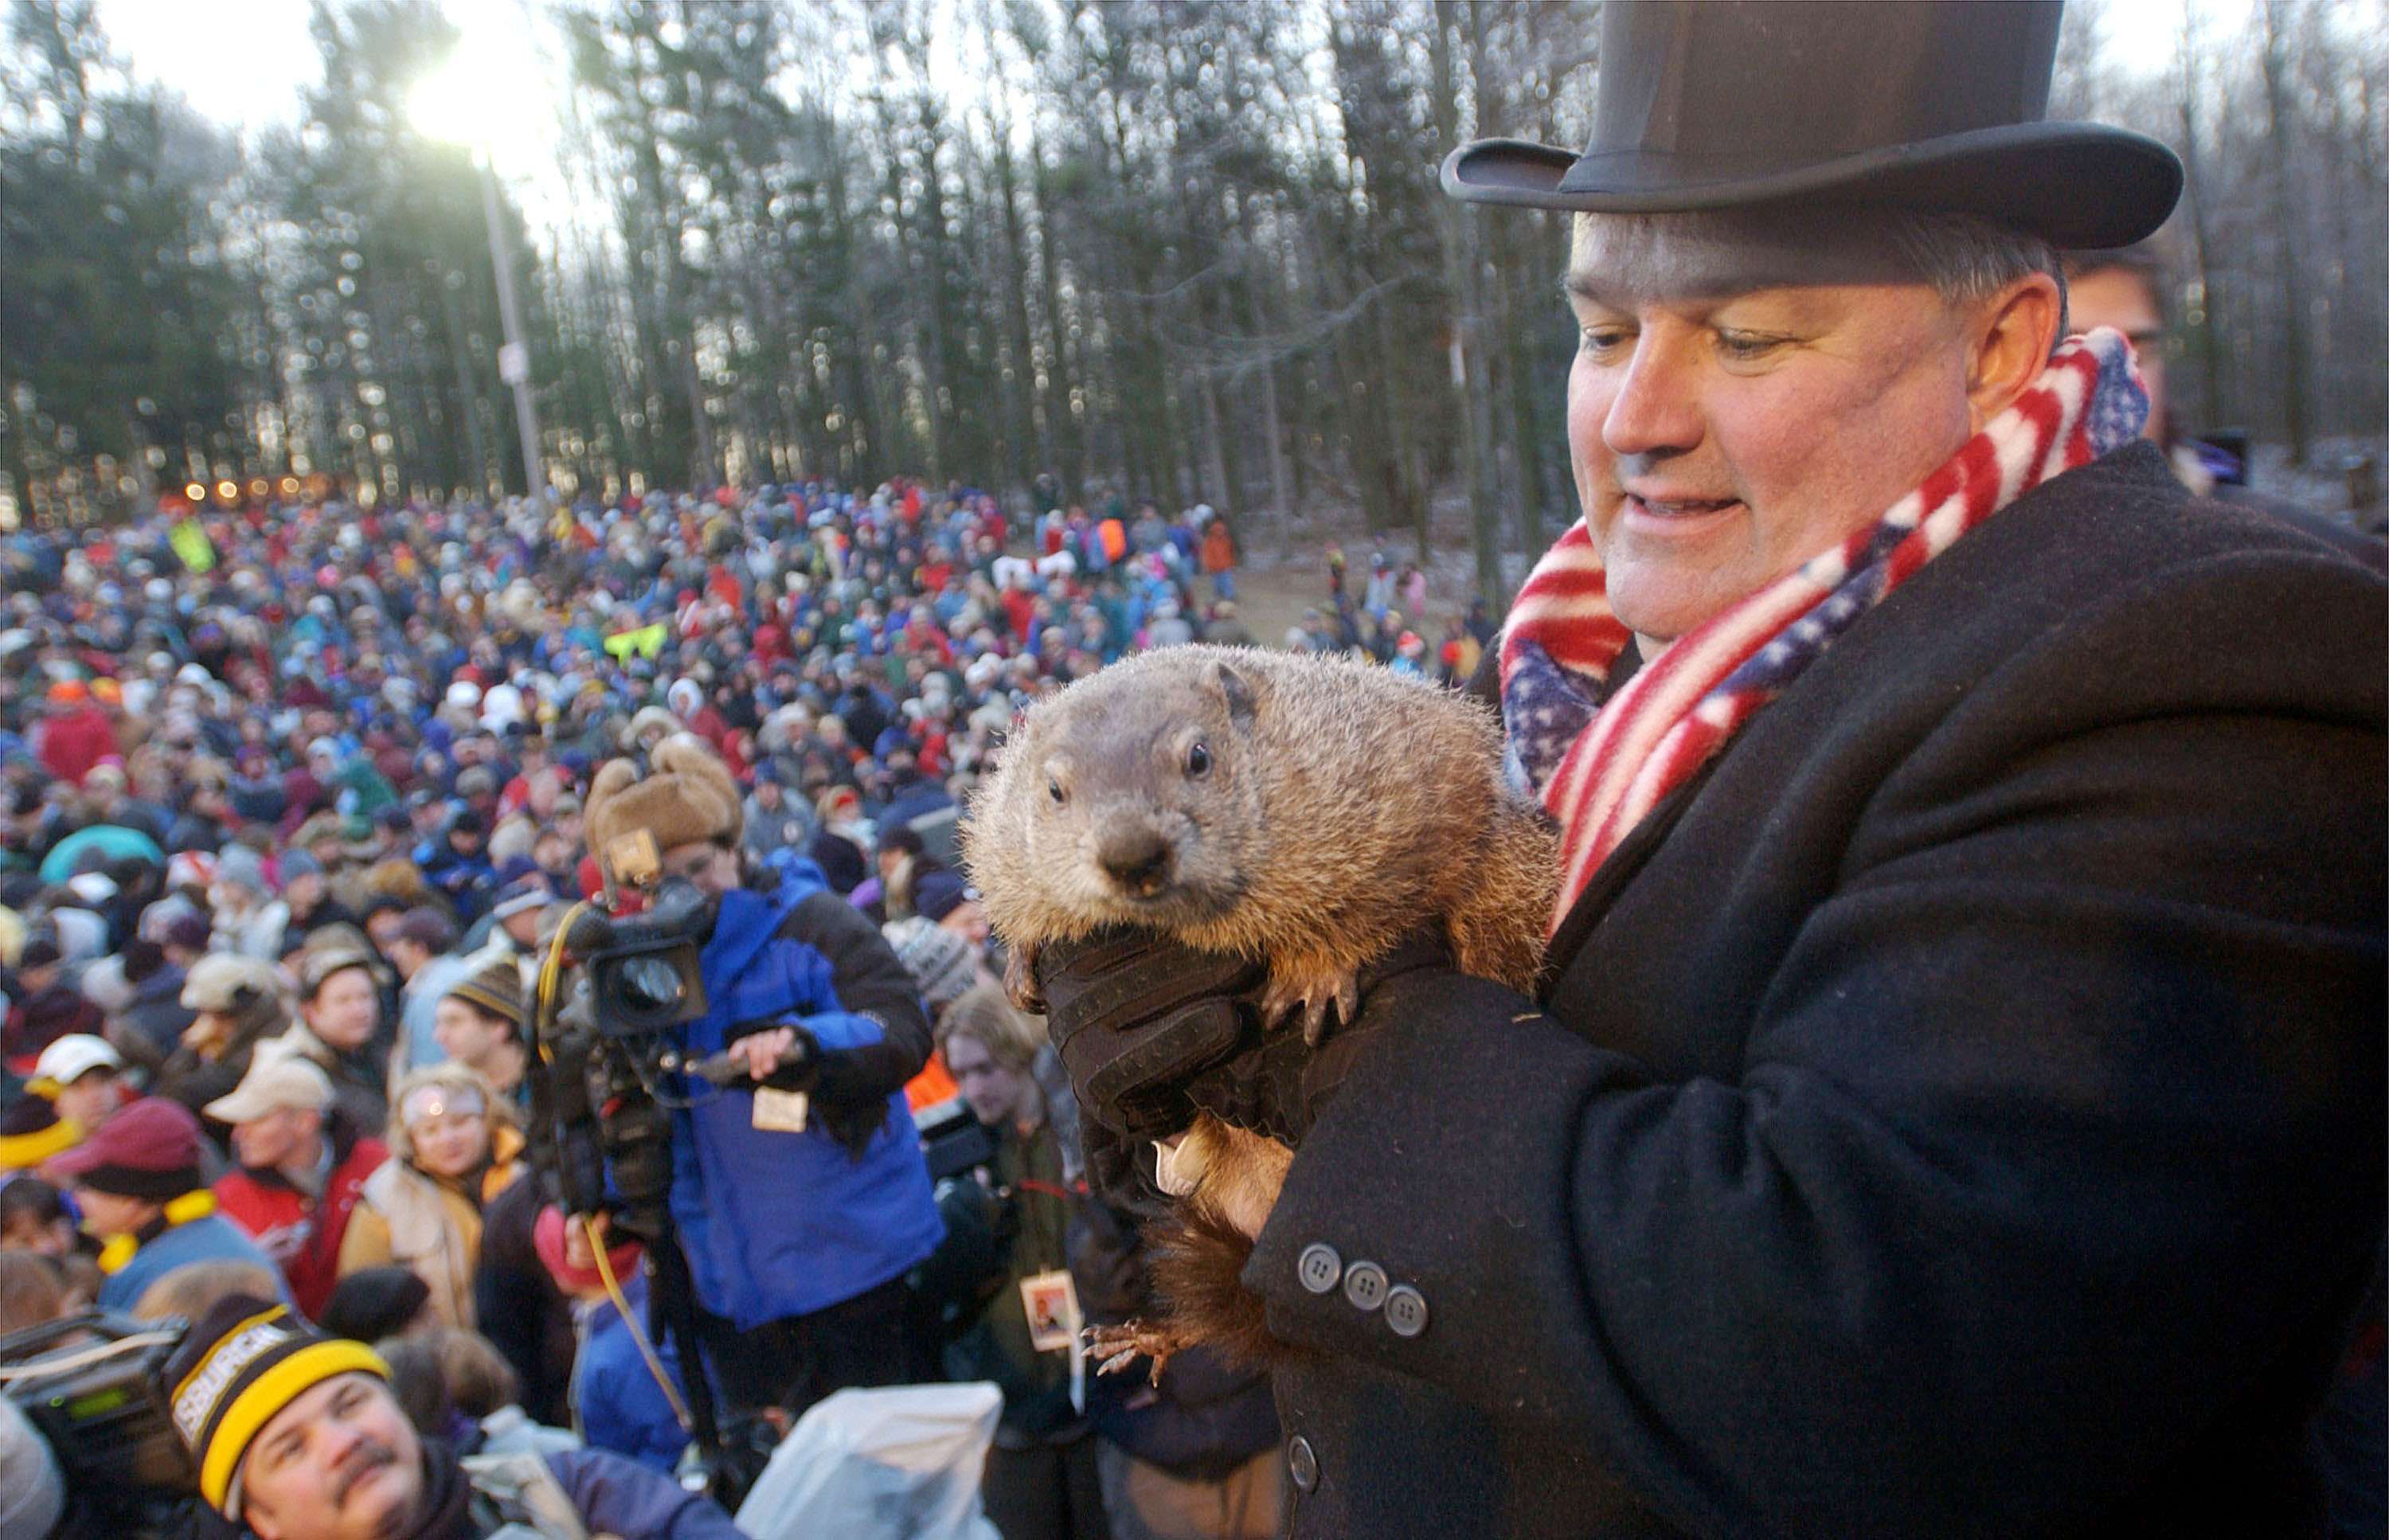 Groundhog Day: How Accurate is Punxsutawney Phil for Columbia?